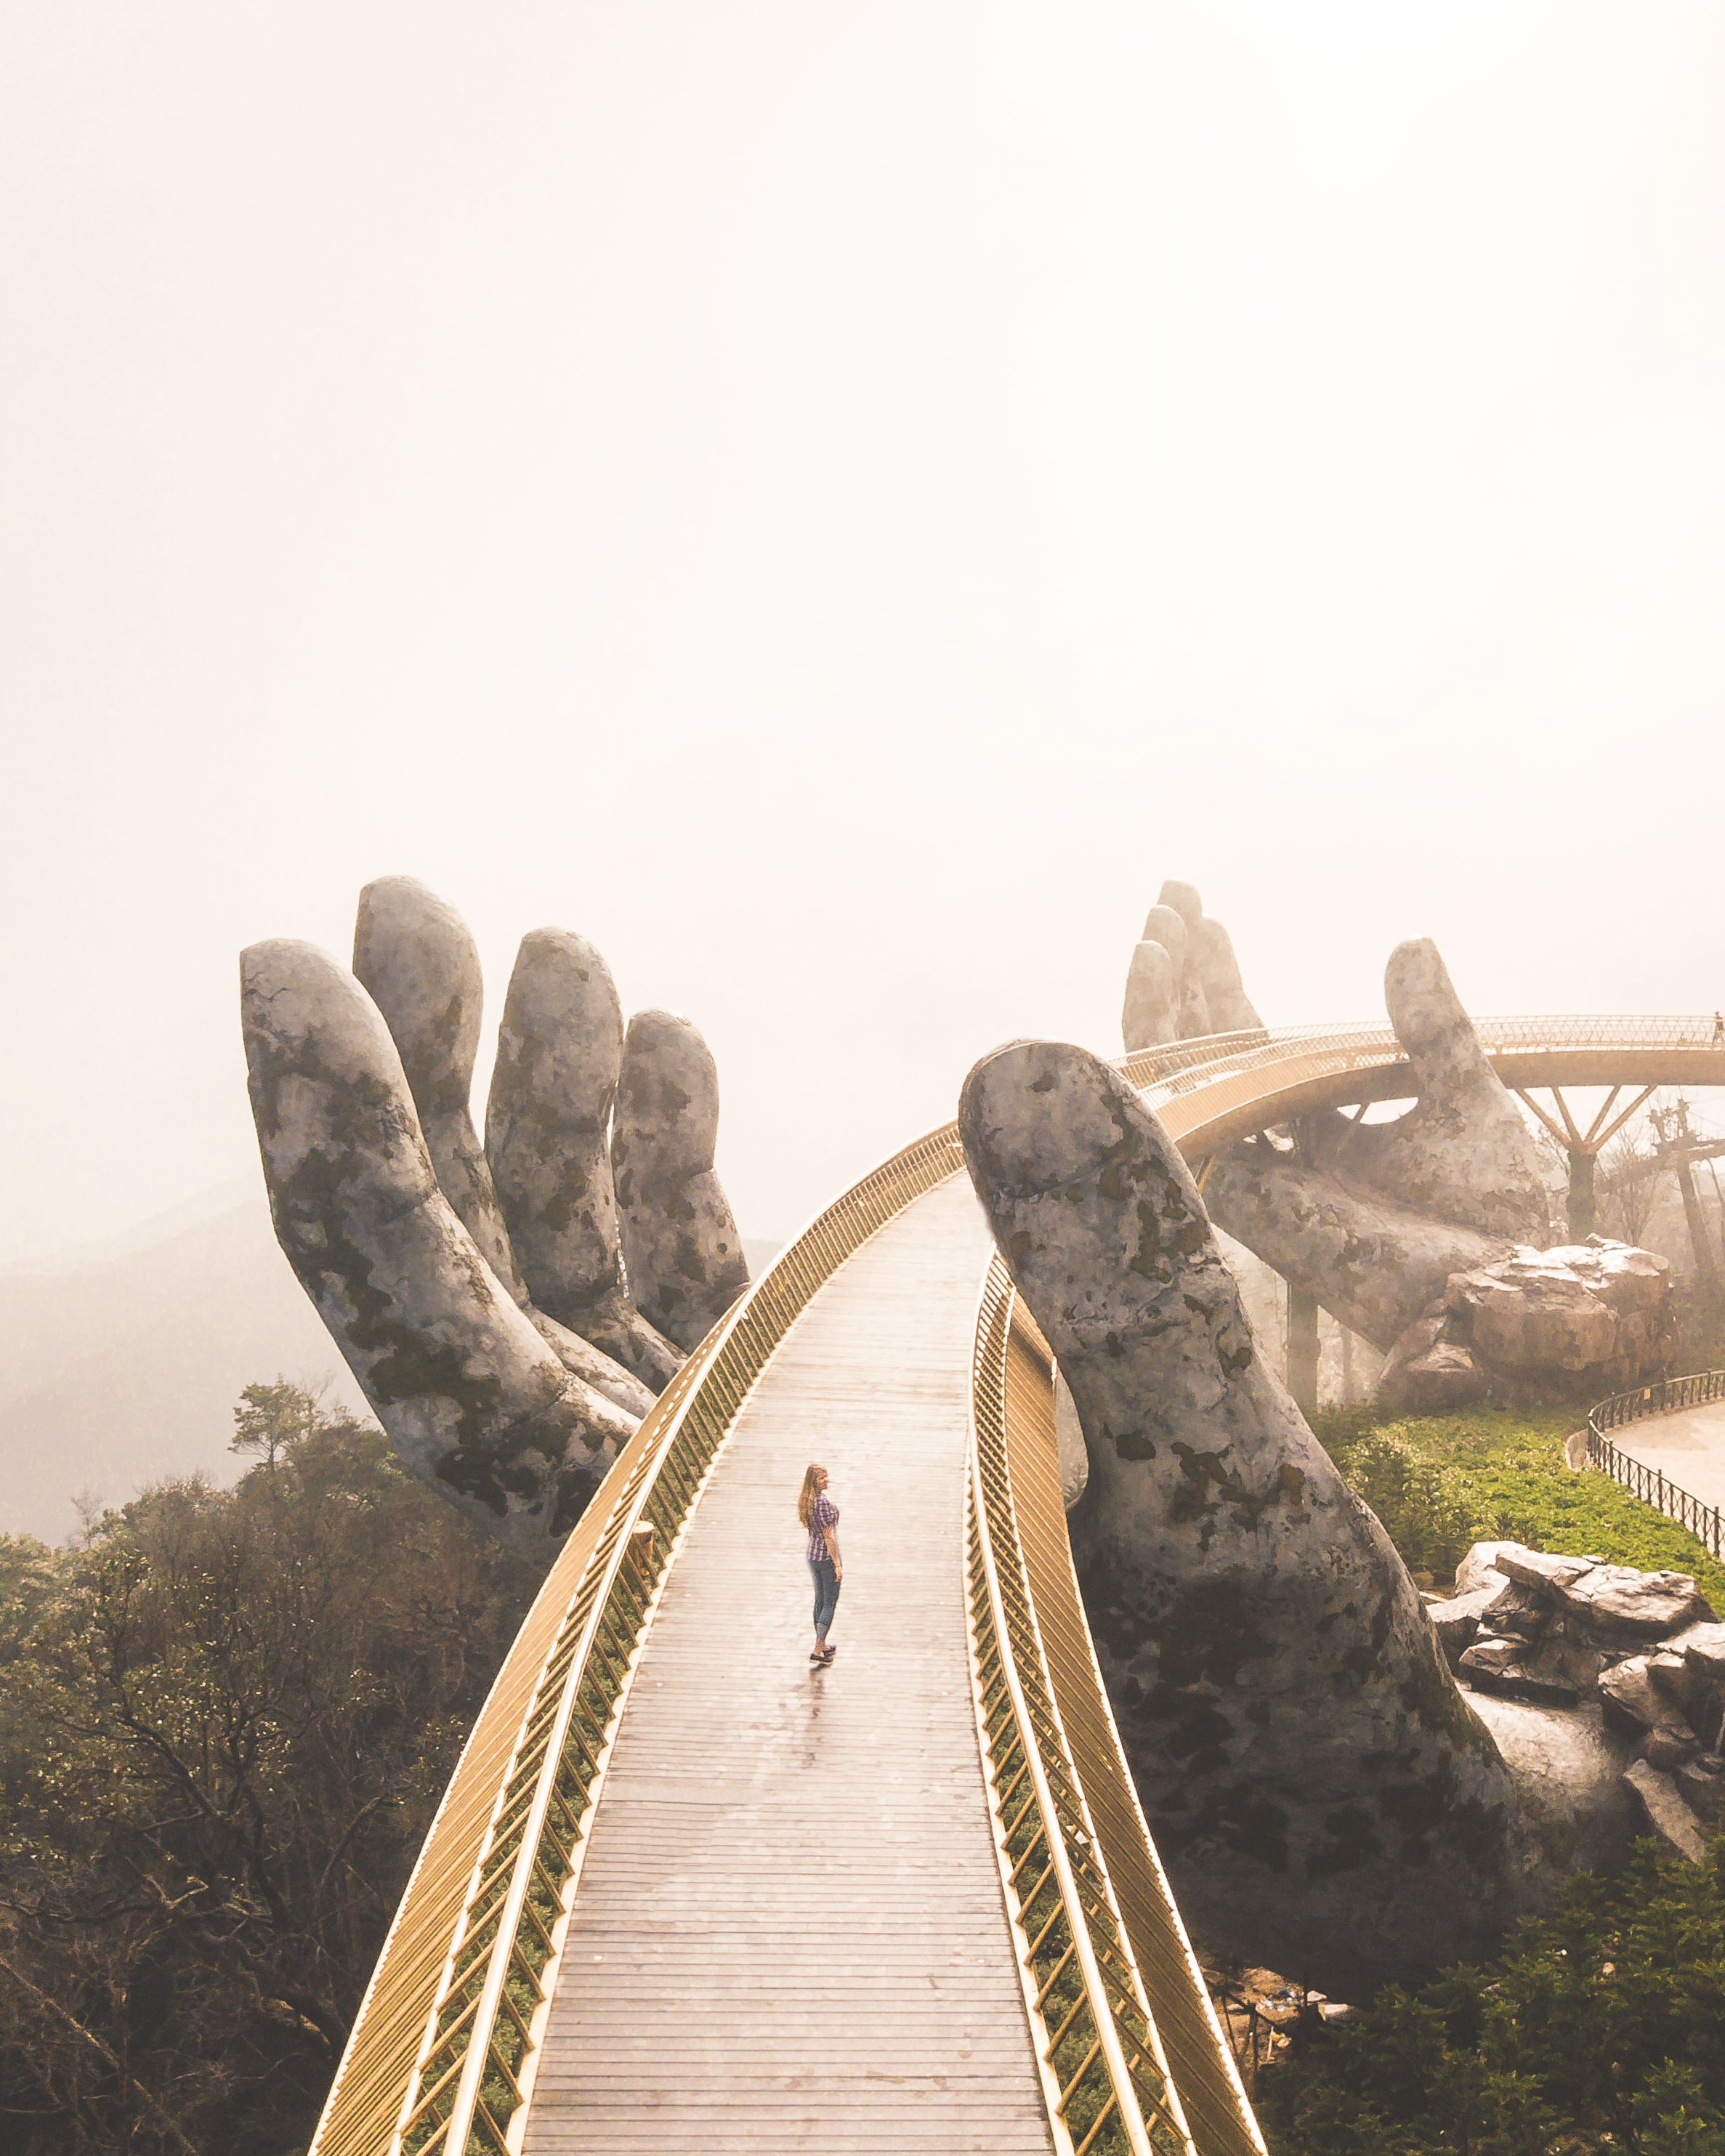 Instagram Spots in Vietnam - Golden Hand Bridge, Ba Na Hills